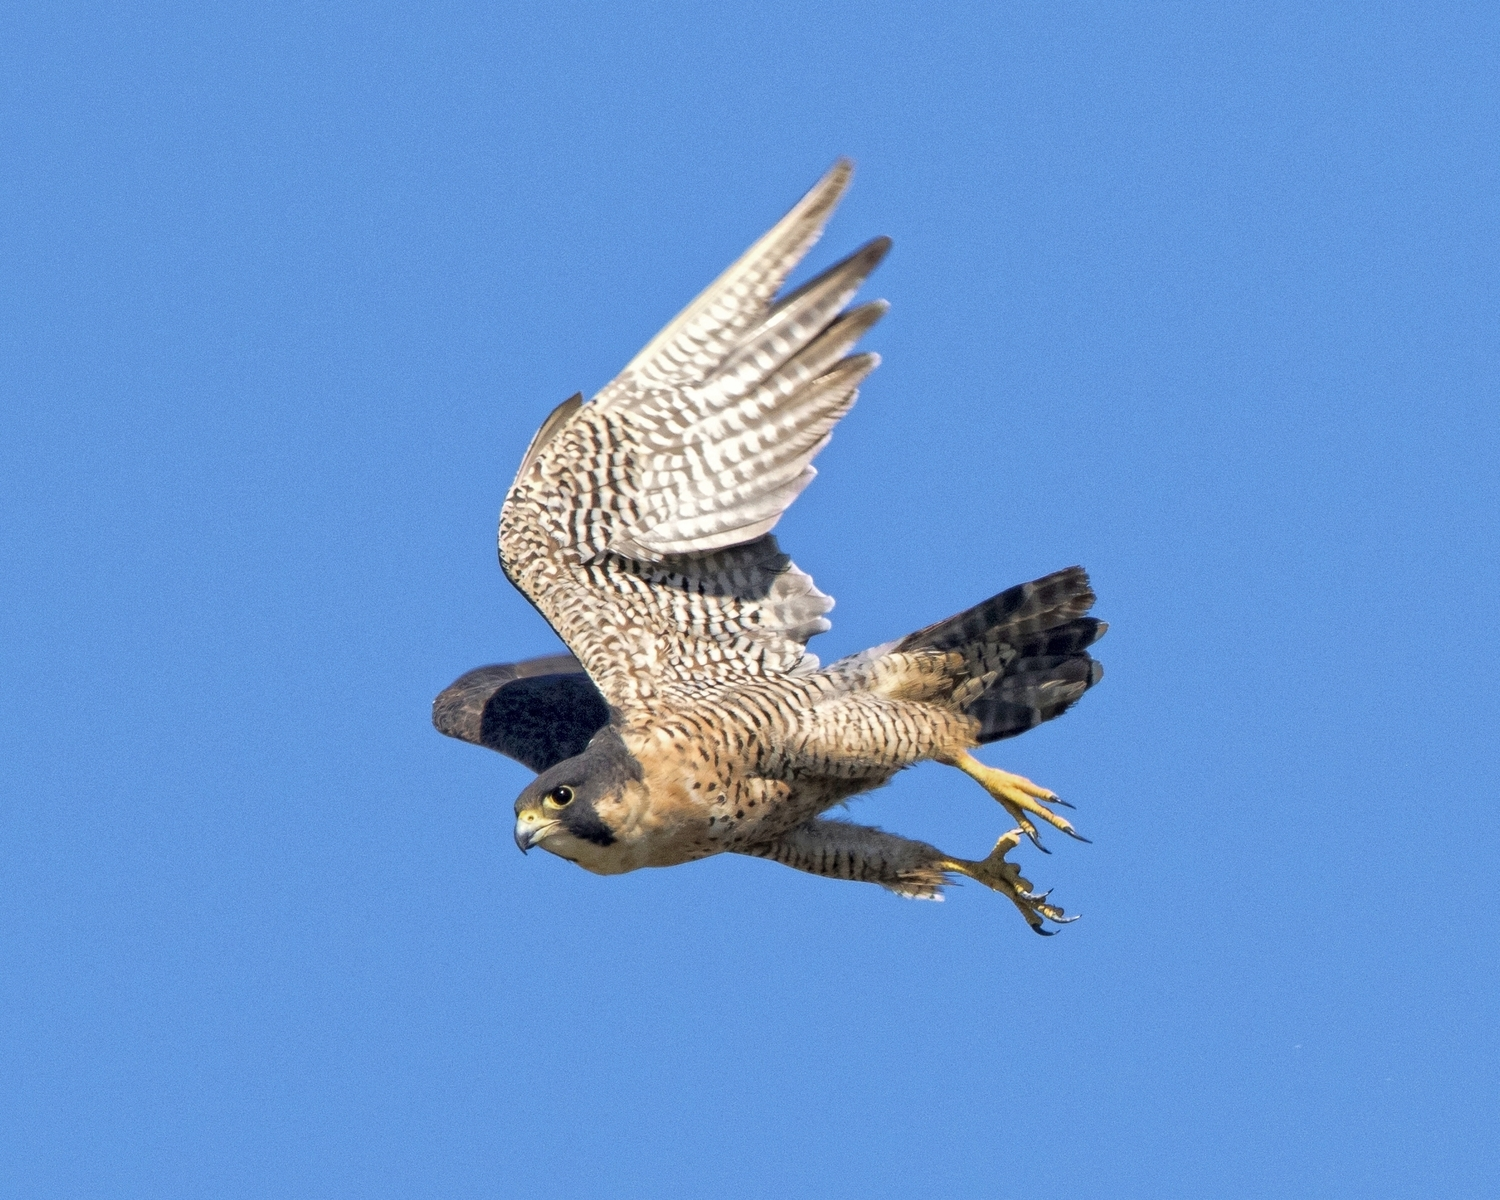 My first capture of a Peregrine Falcon